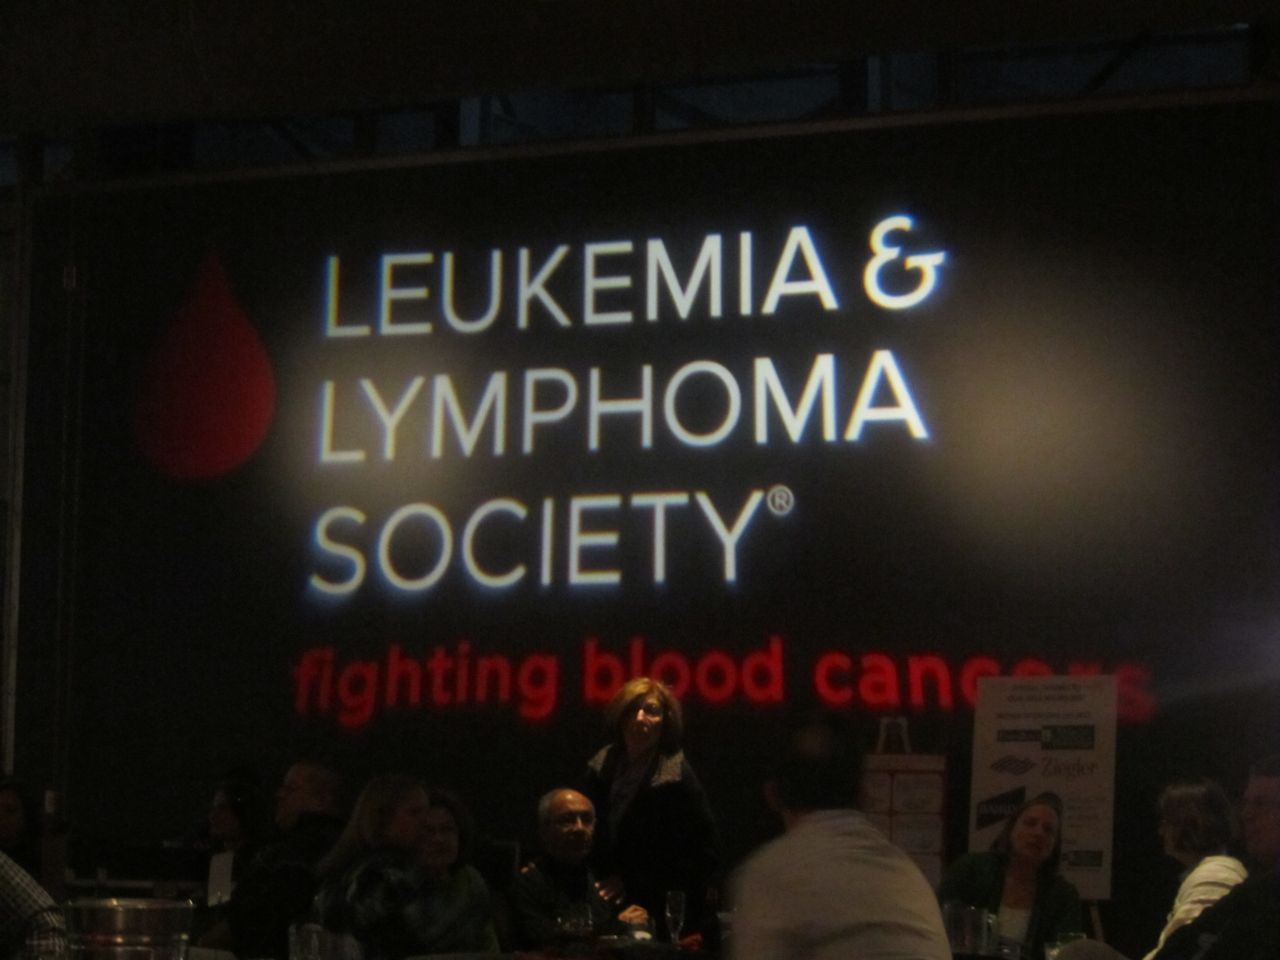 Leukemia & Lymphoma Society sign